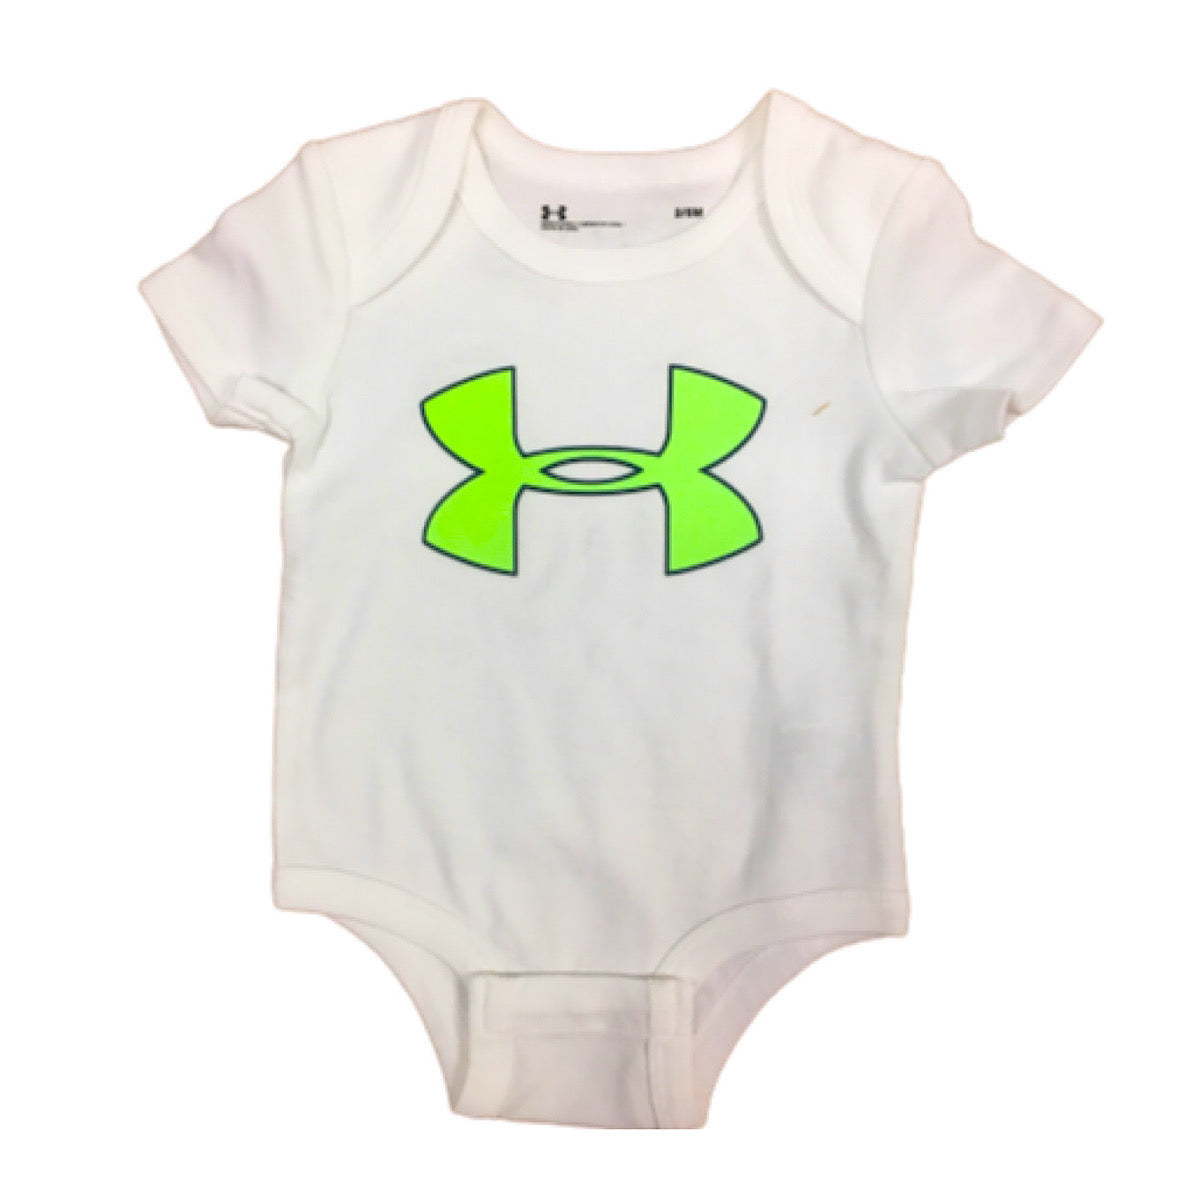 Under Armour Lime Logo Onesie